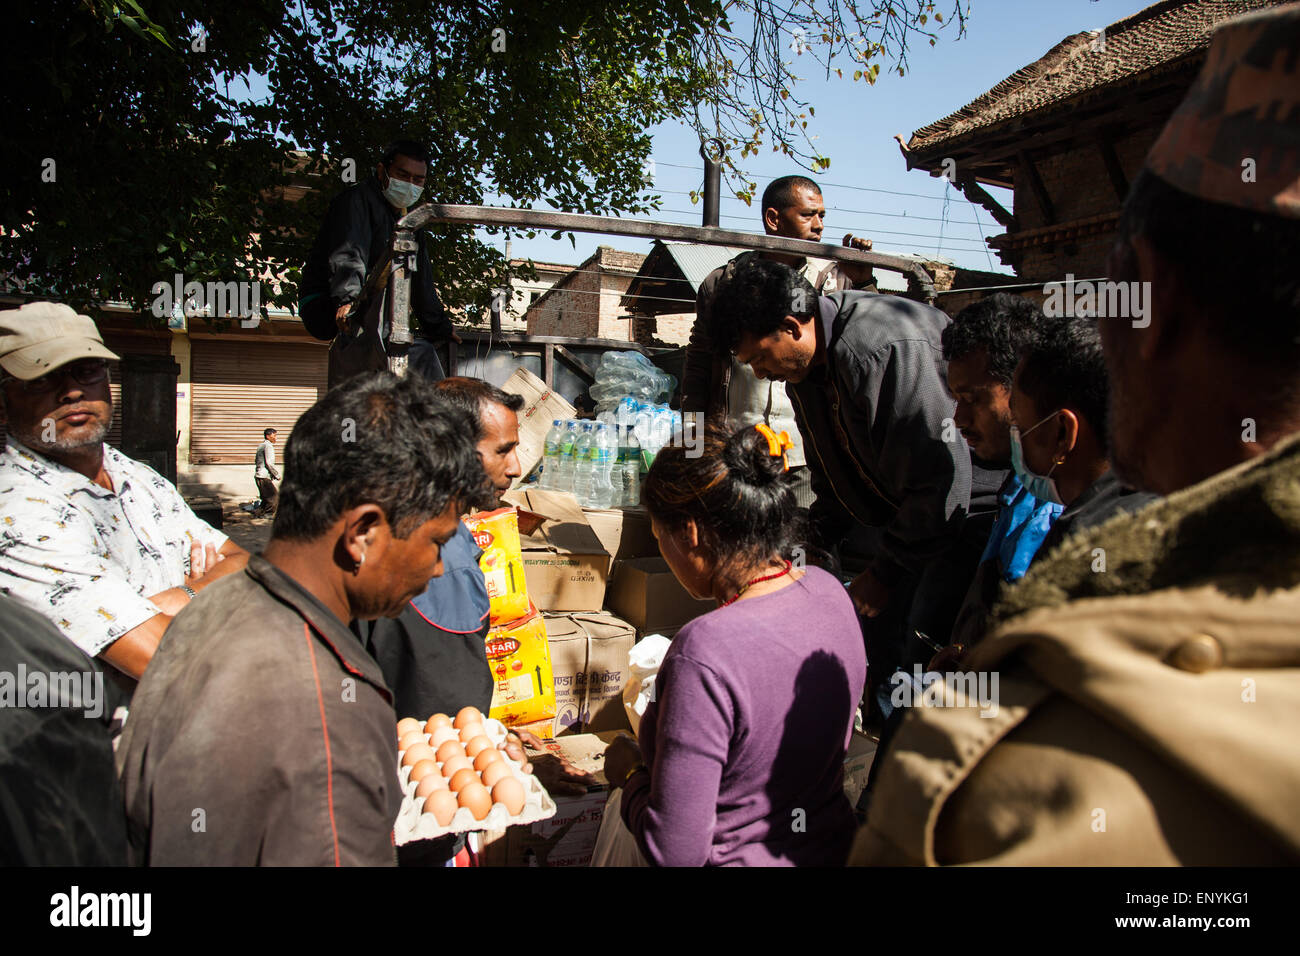 Food supplies being delivered among earthquake affected victims in Sankhu, Nepal. - Stock Image